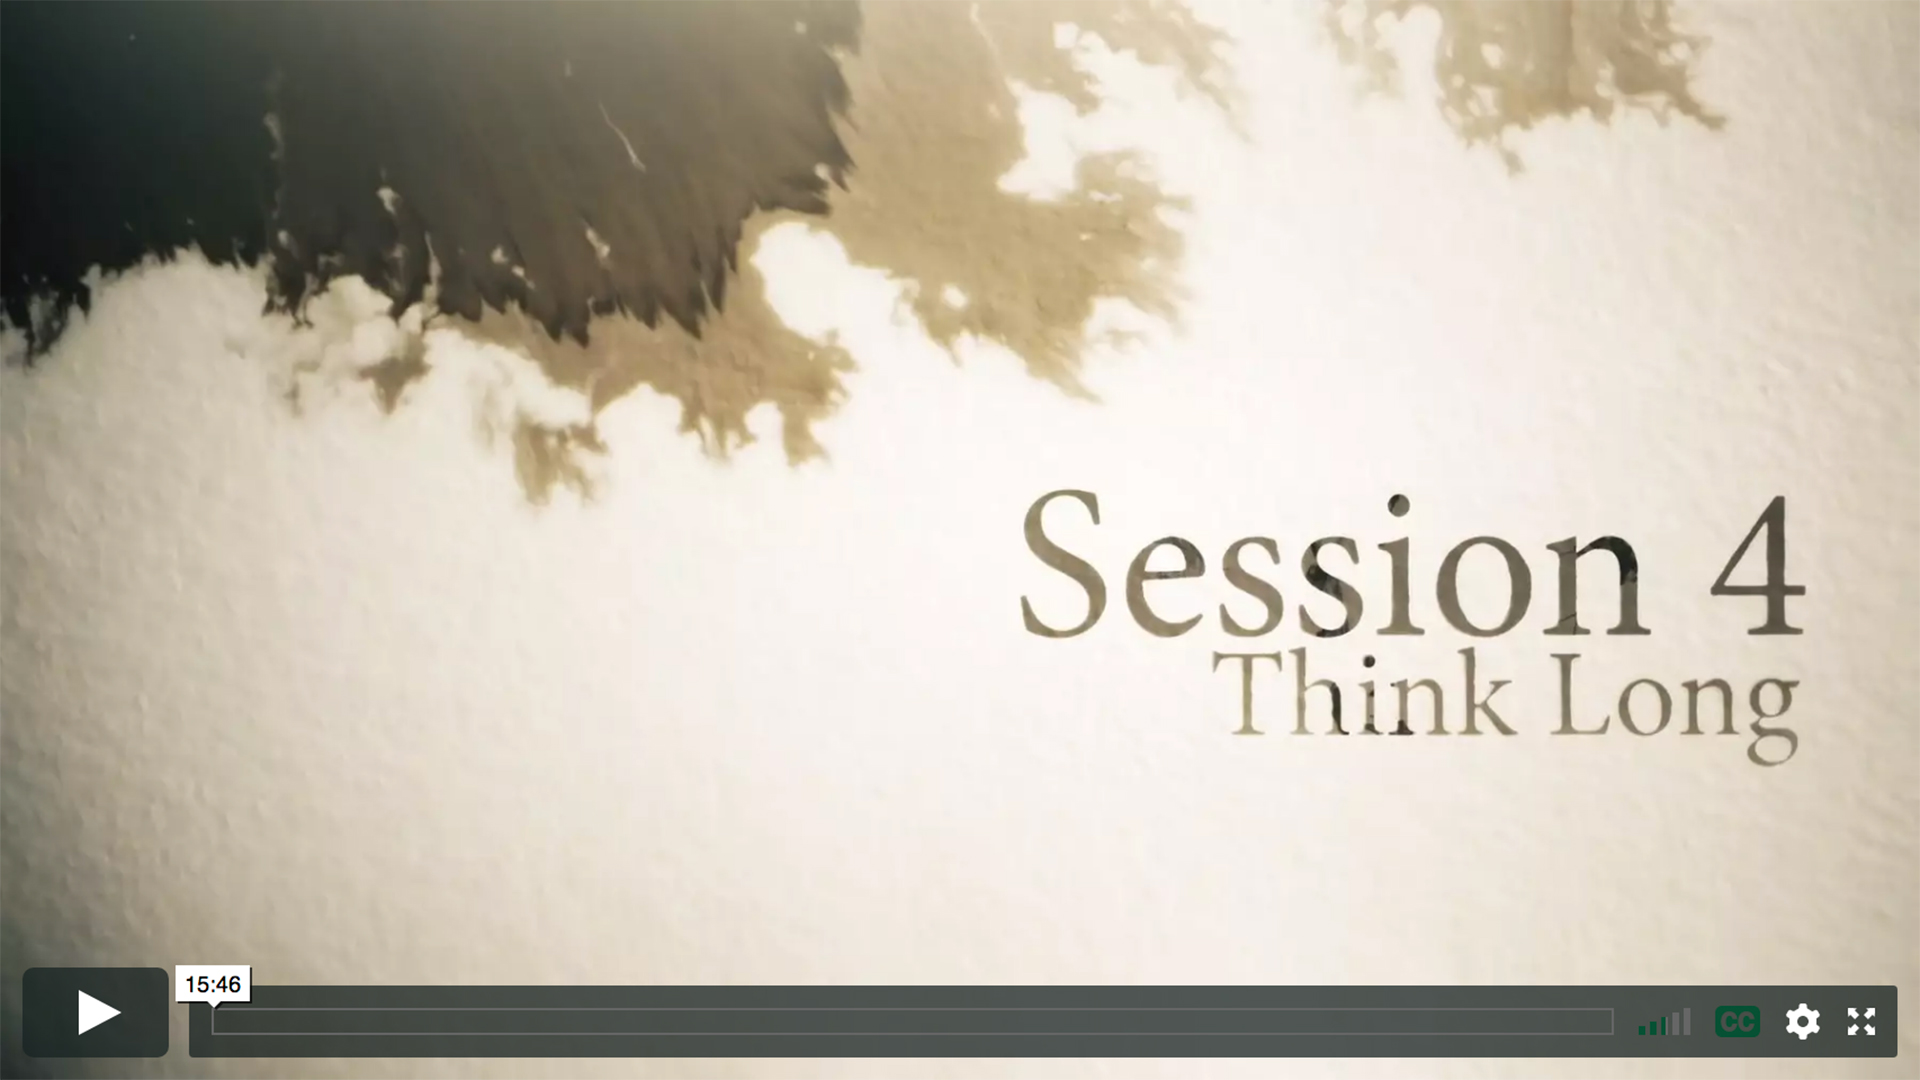 Session 4 - Think Long